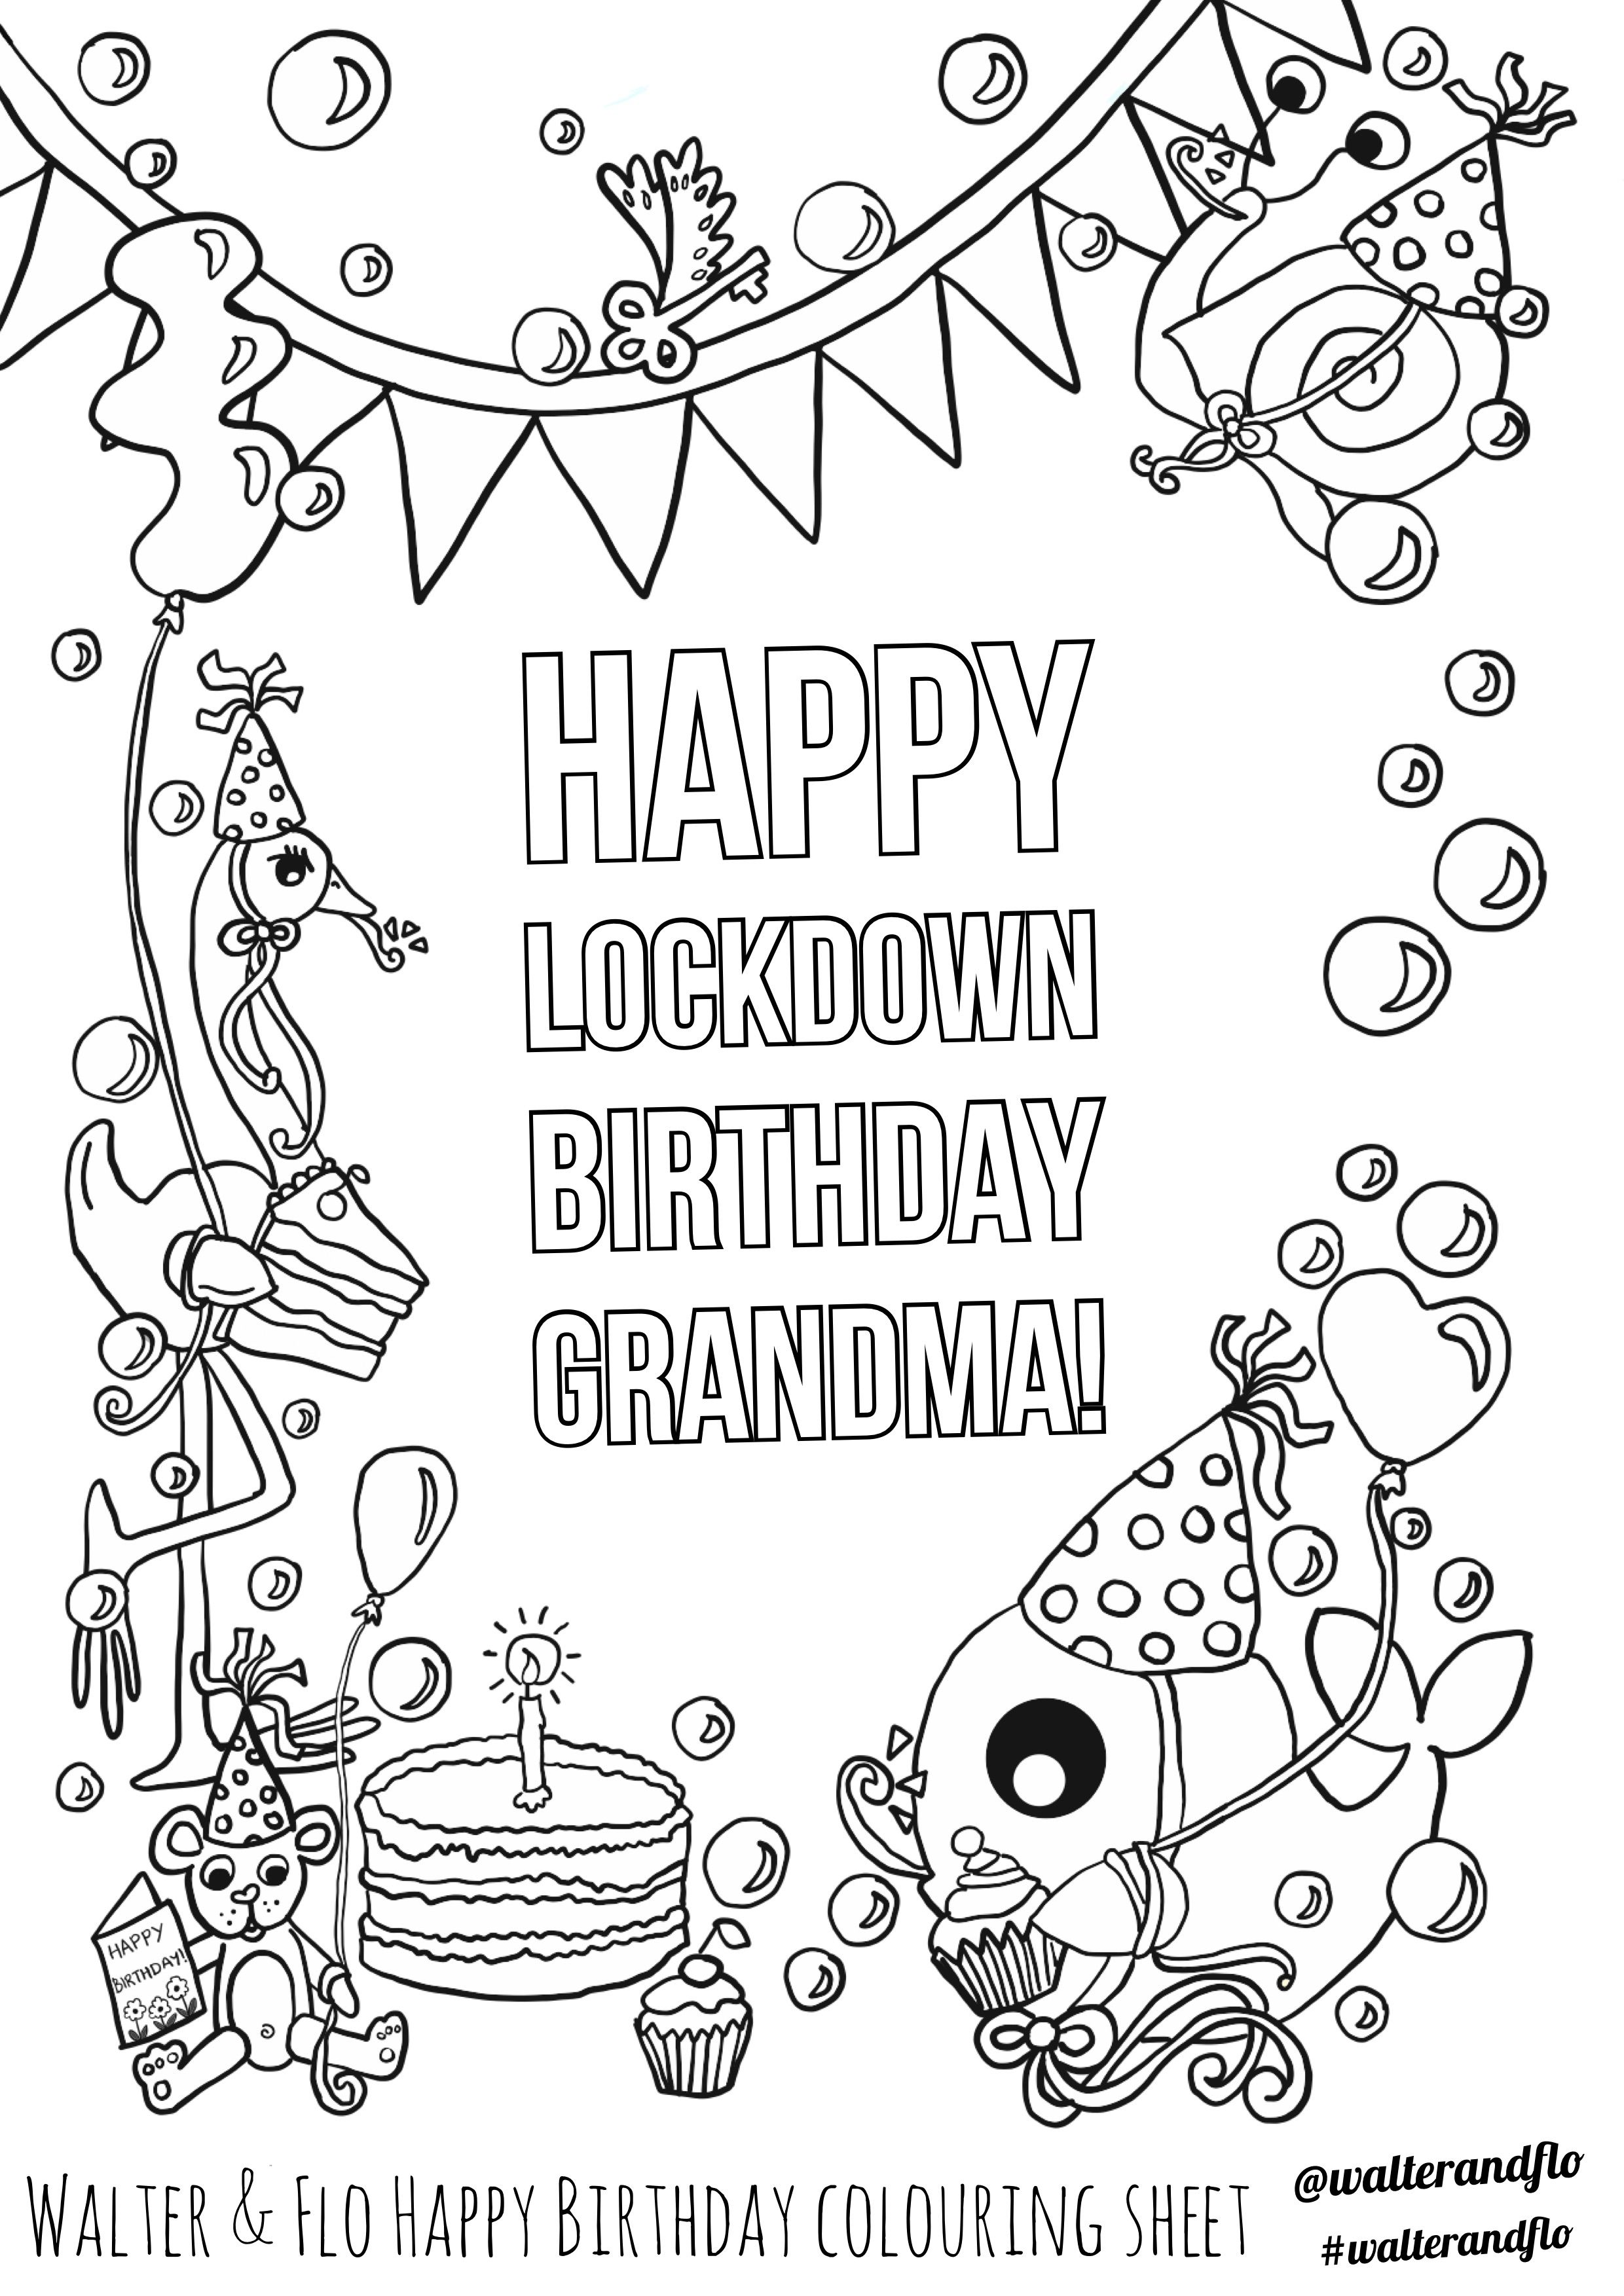 Happy lockdown birthday grandma in 2020 | Birthday ...